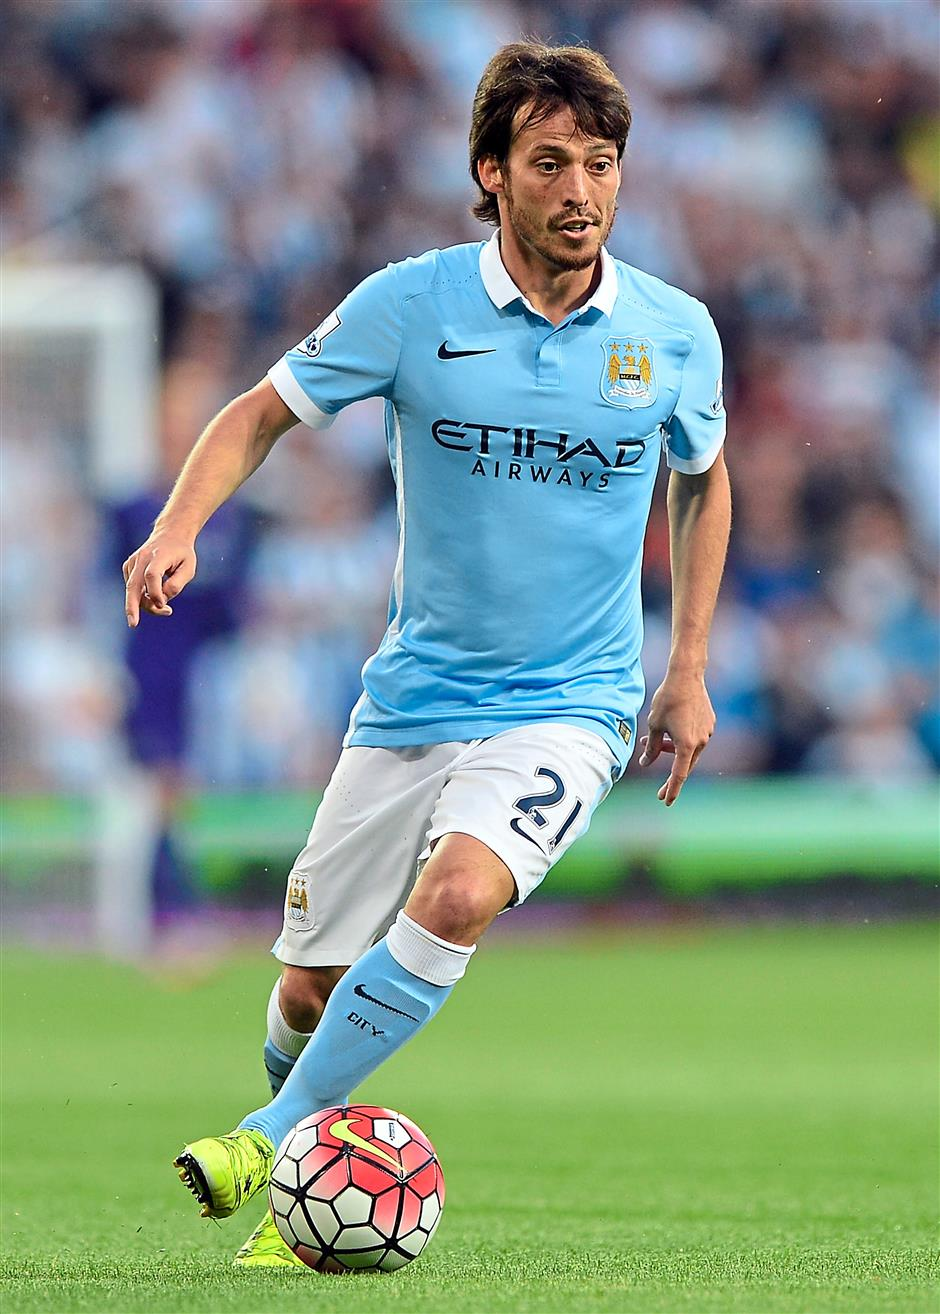 Master midfielder: Silva could be City's key player in today's clash at the Etihad – and it would surprise no one.